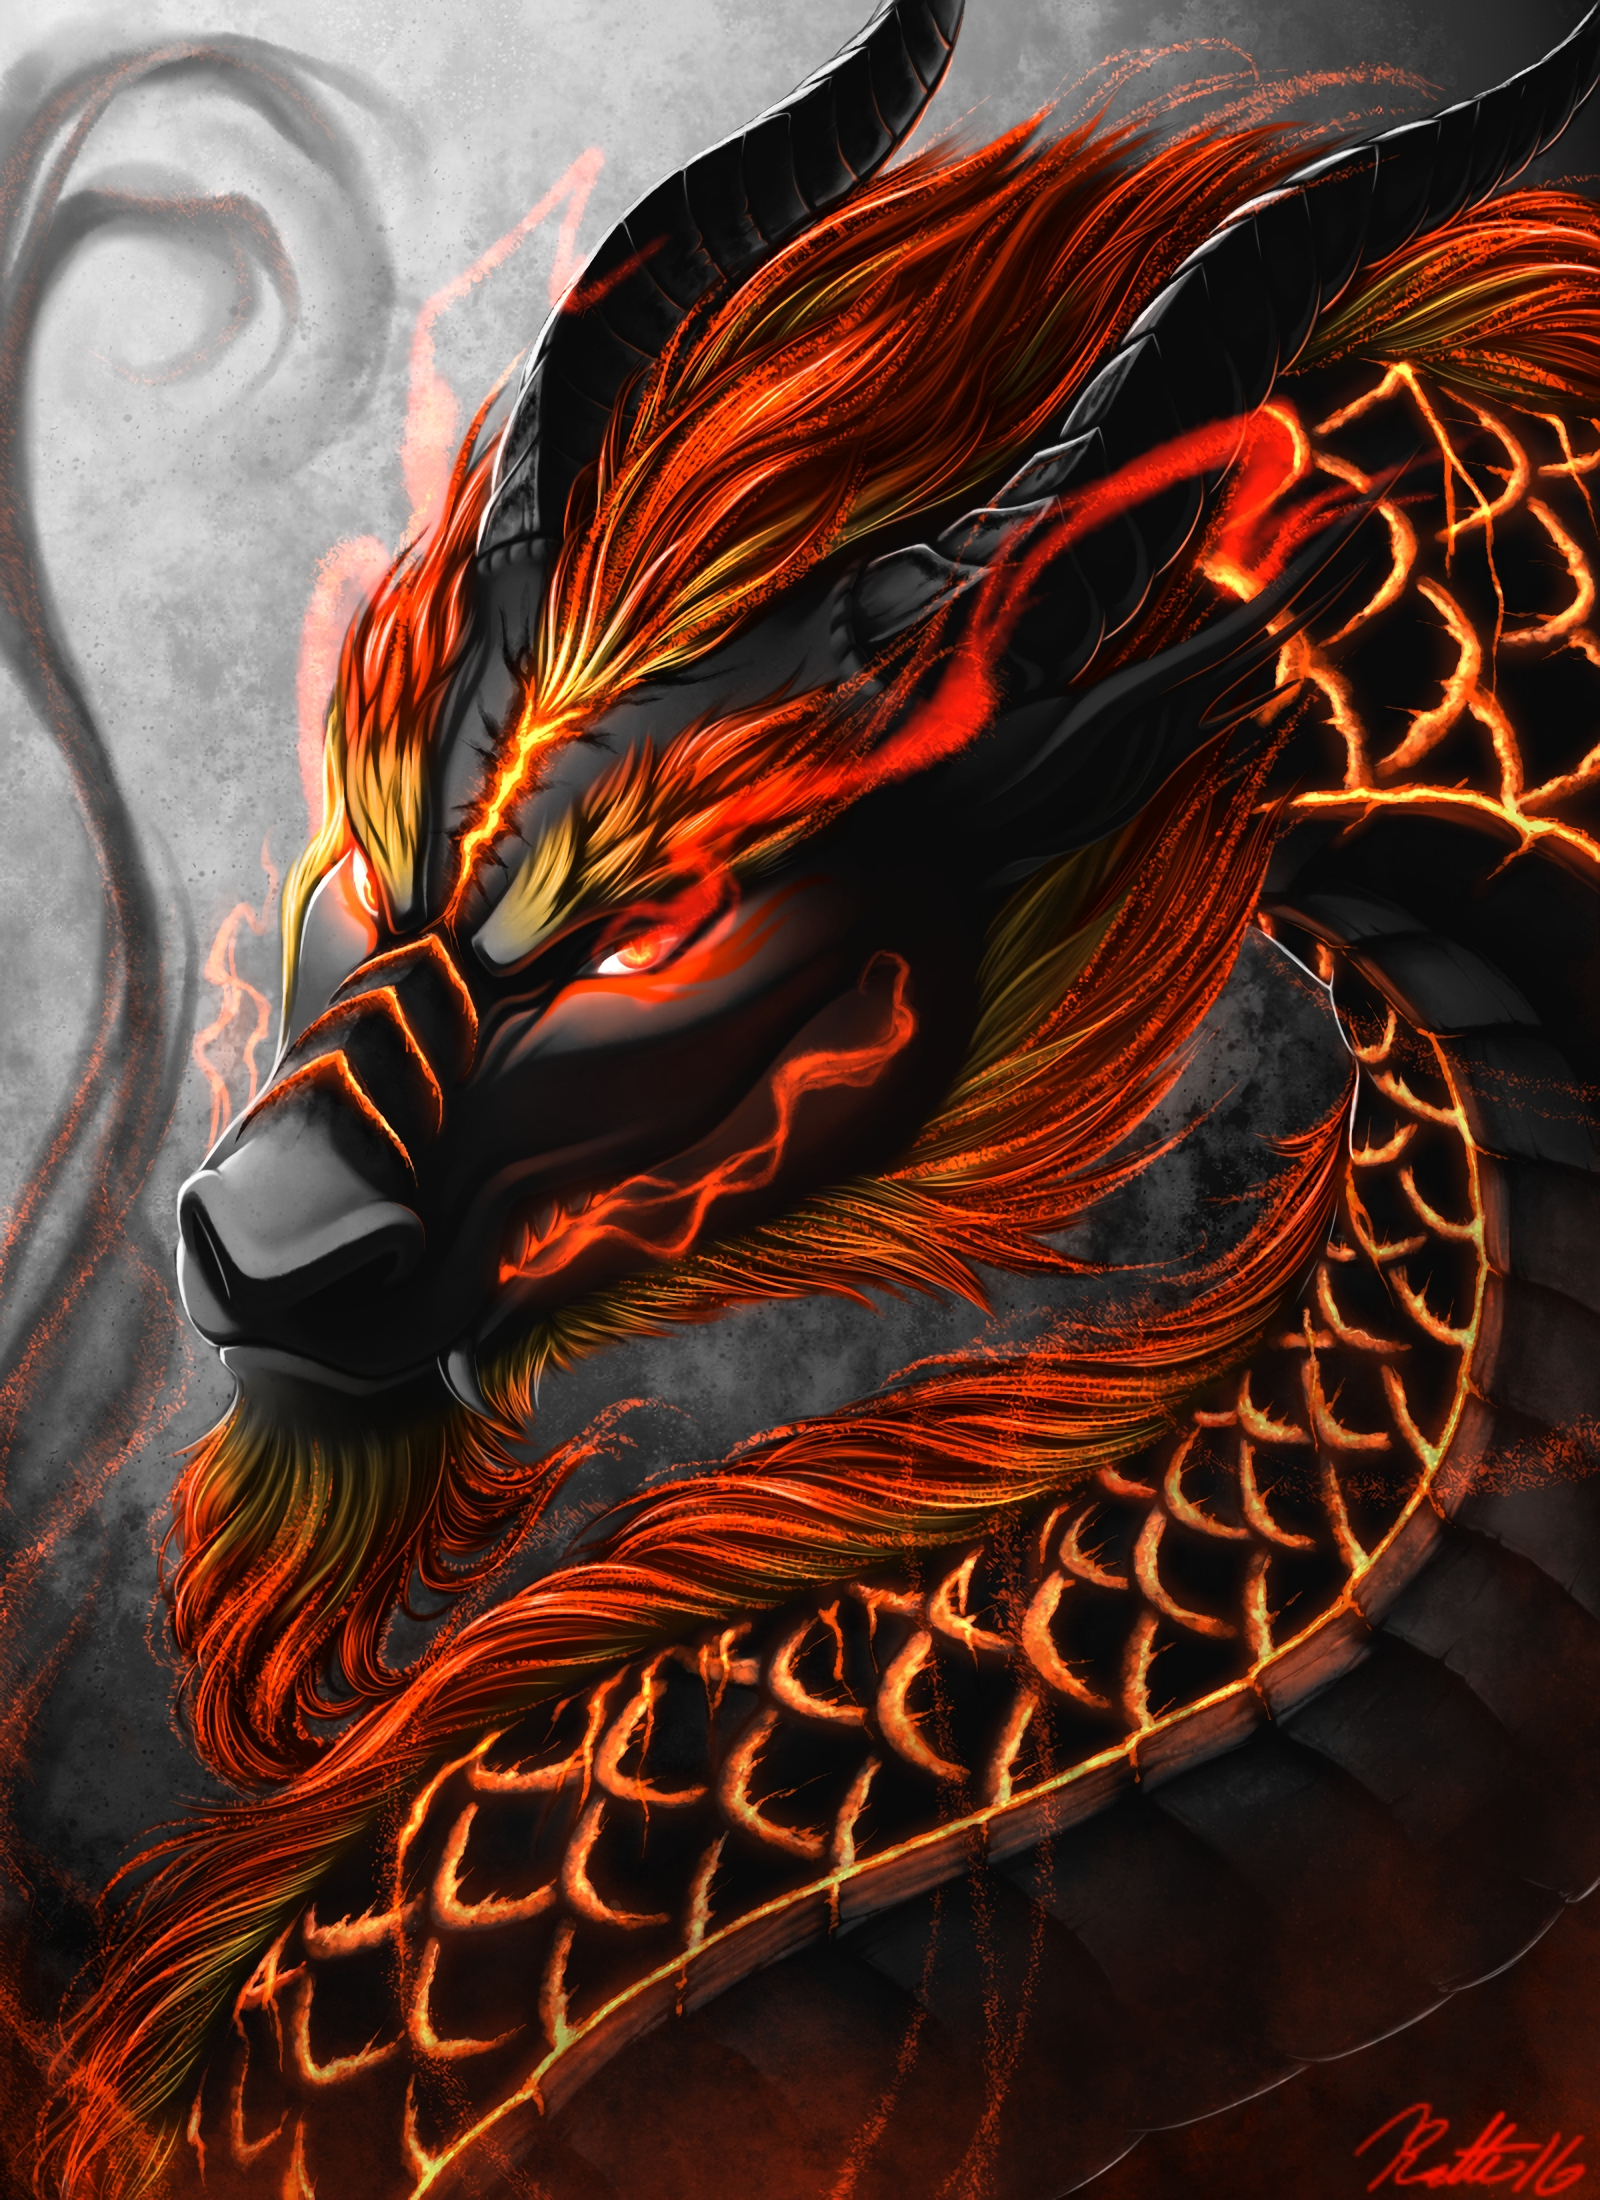 154971 Screensavers and Wallpapers Fiction for phone. Download Art, Snakes, Dragon, Being, Creature, Fiction, That's Incredible pictures for free